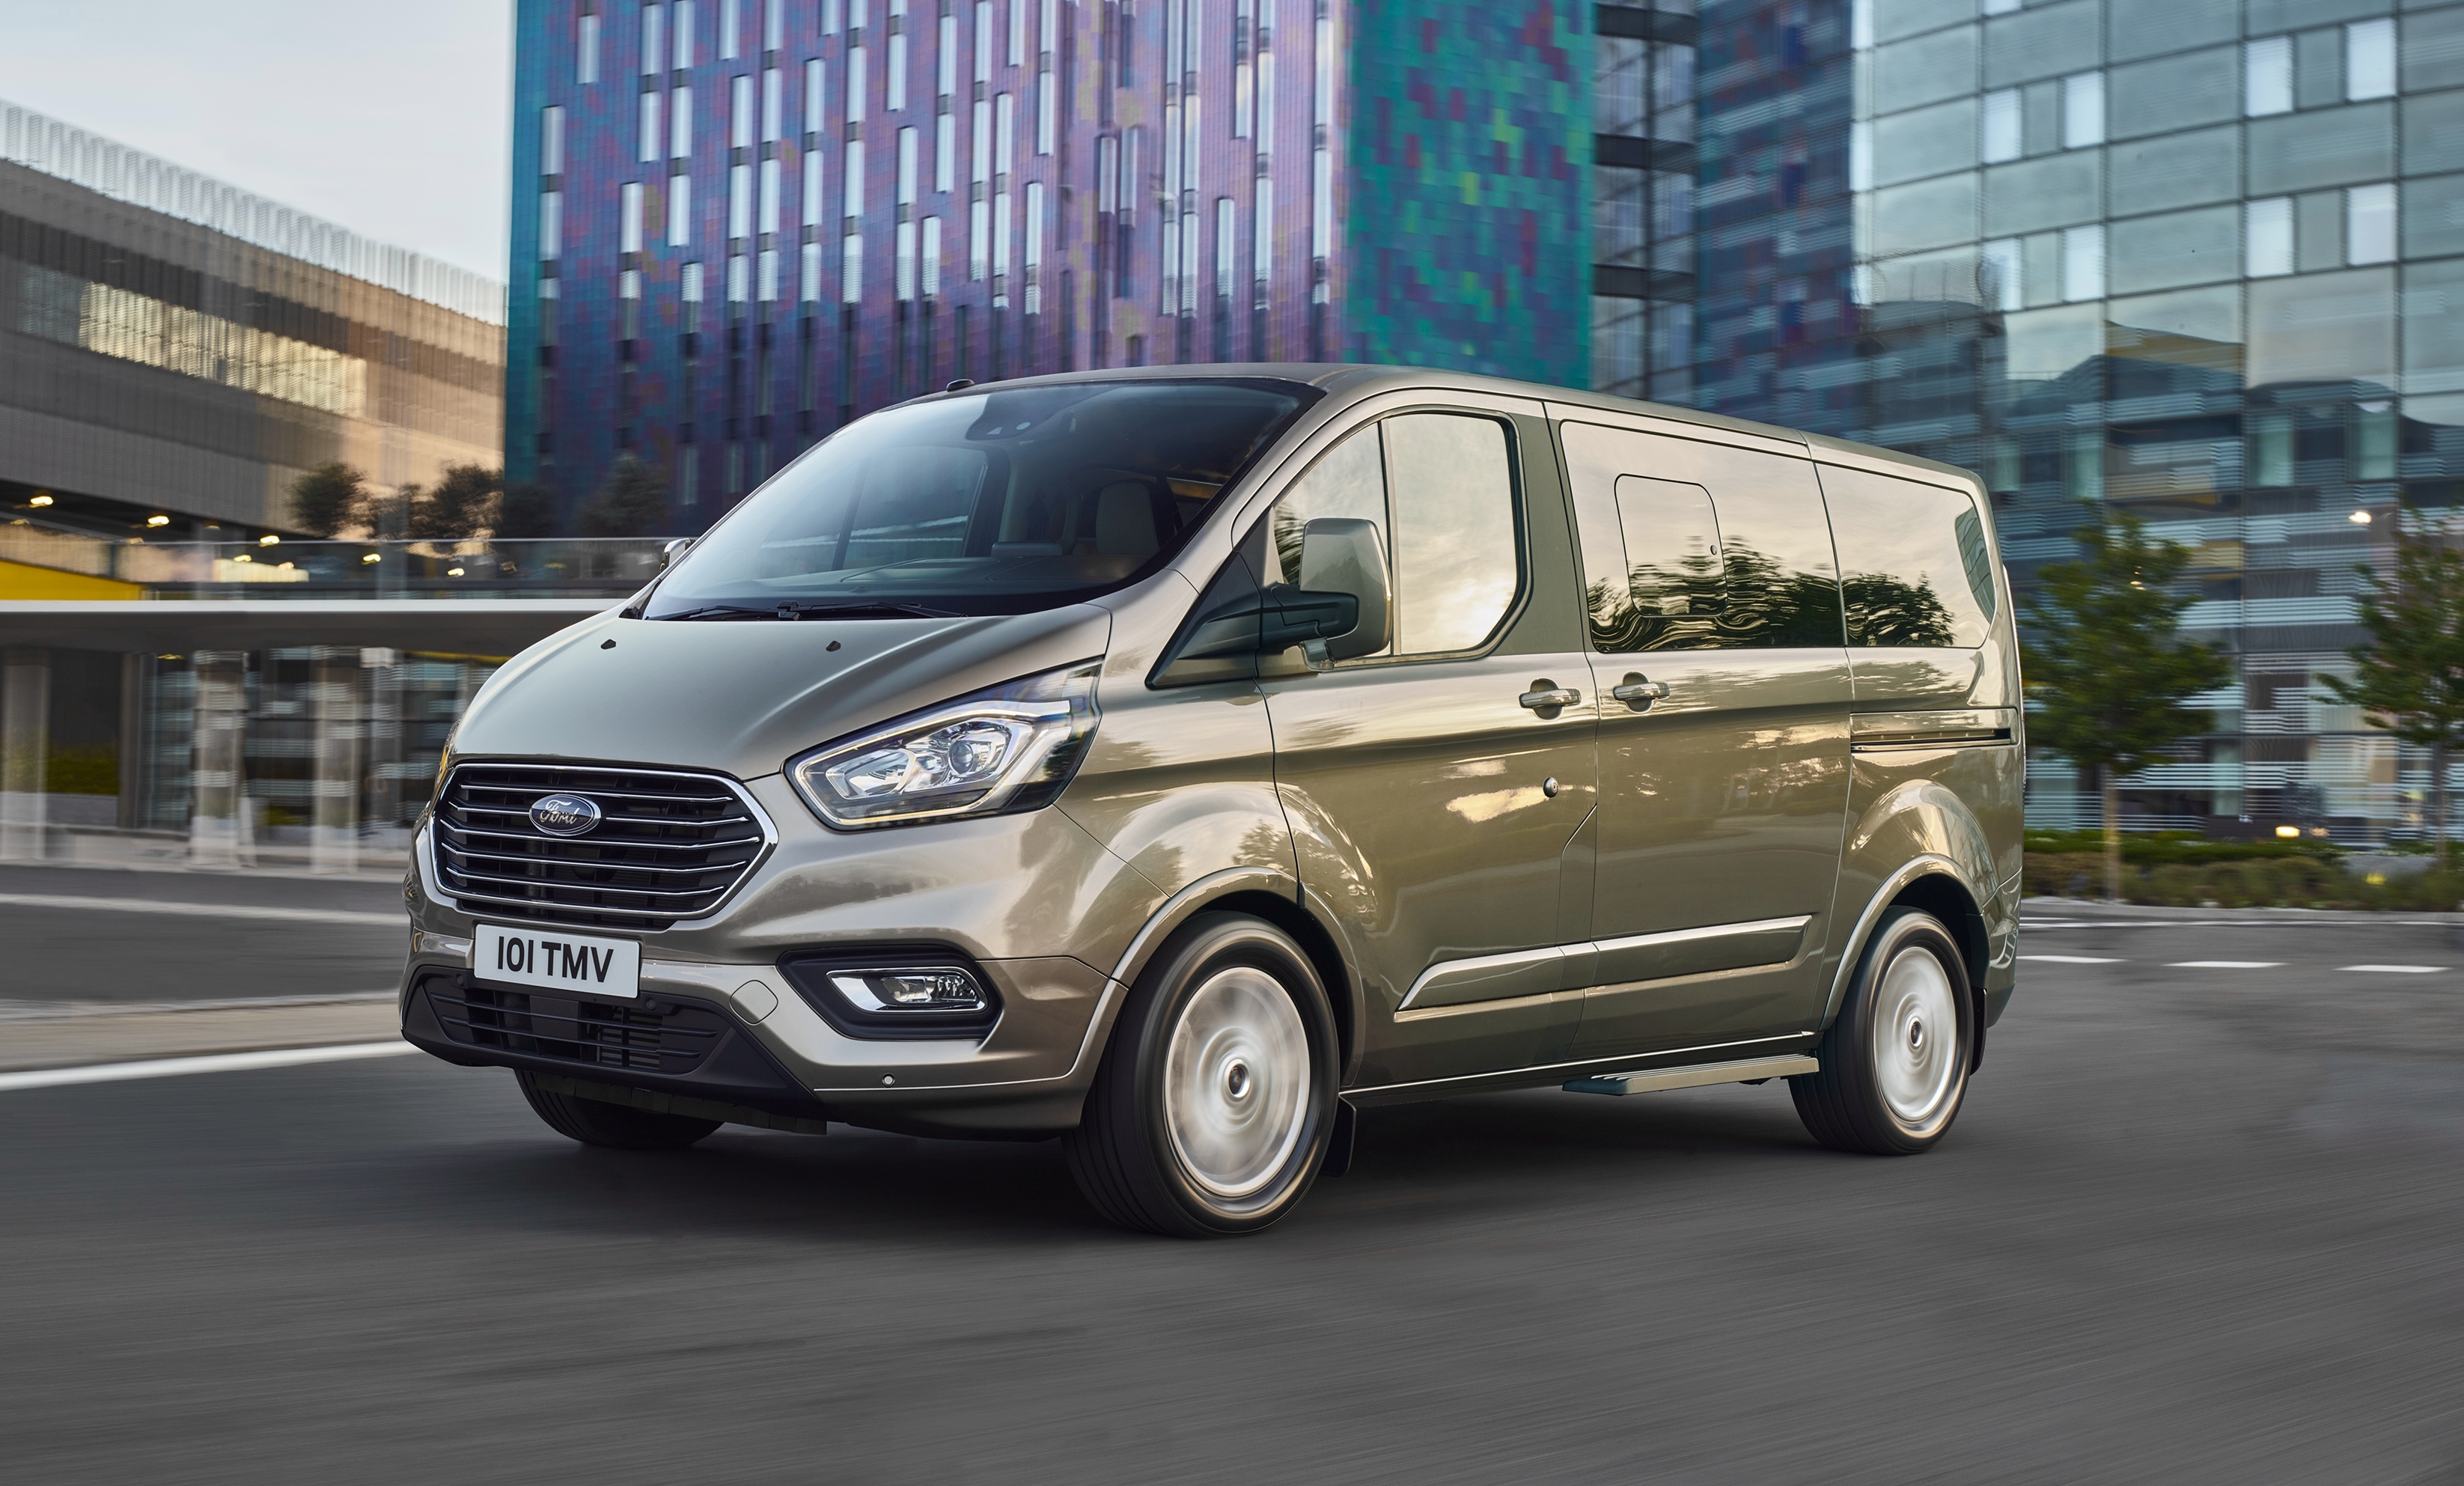 news facelifted ford tourneo heralds transit update. Black Bedroom Furniture Sets. Home Design Ideas